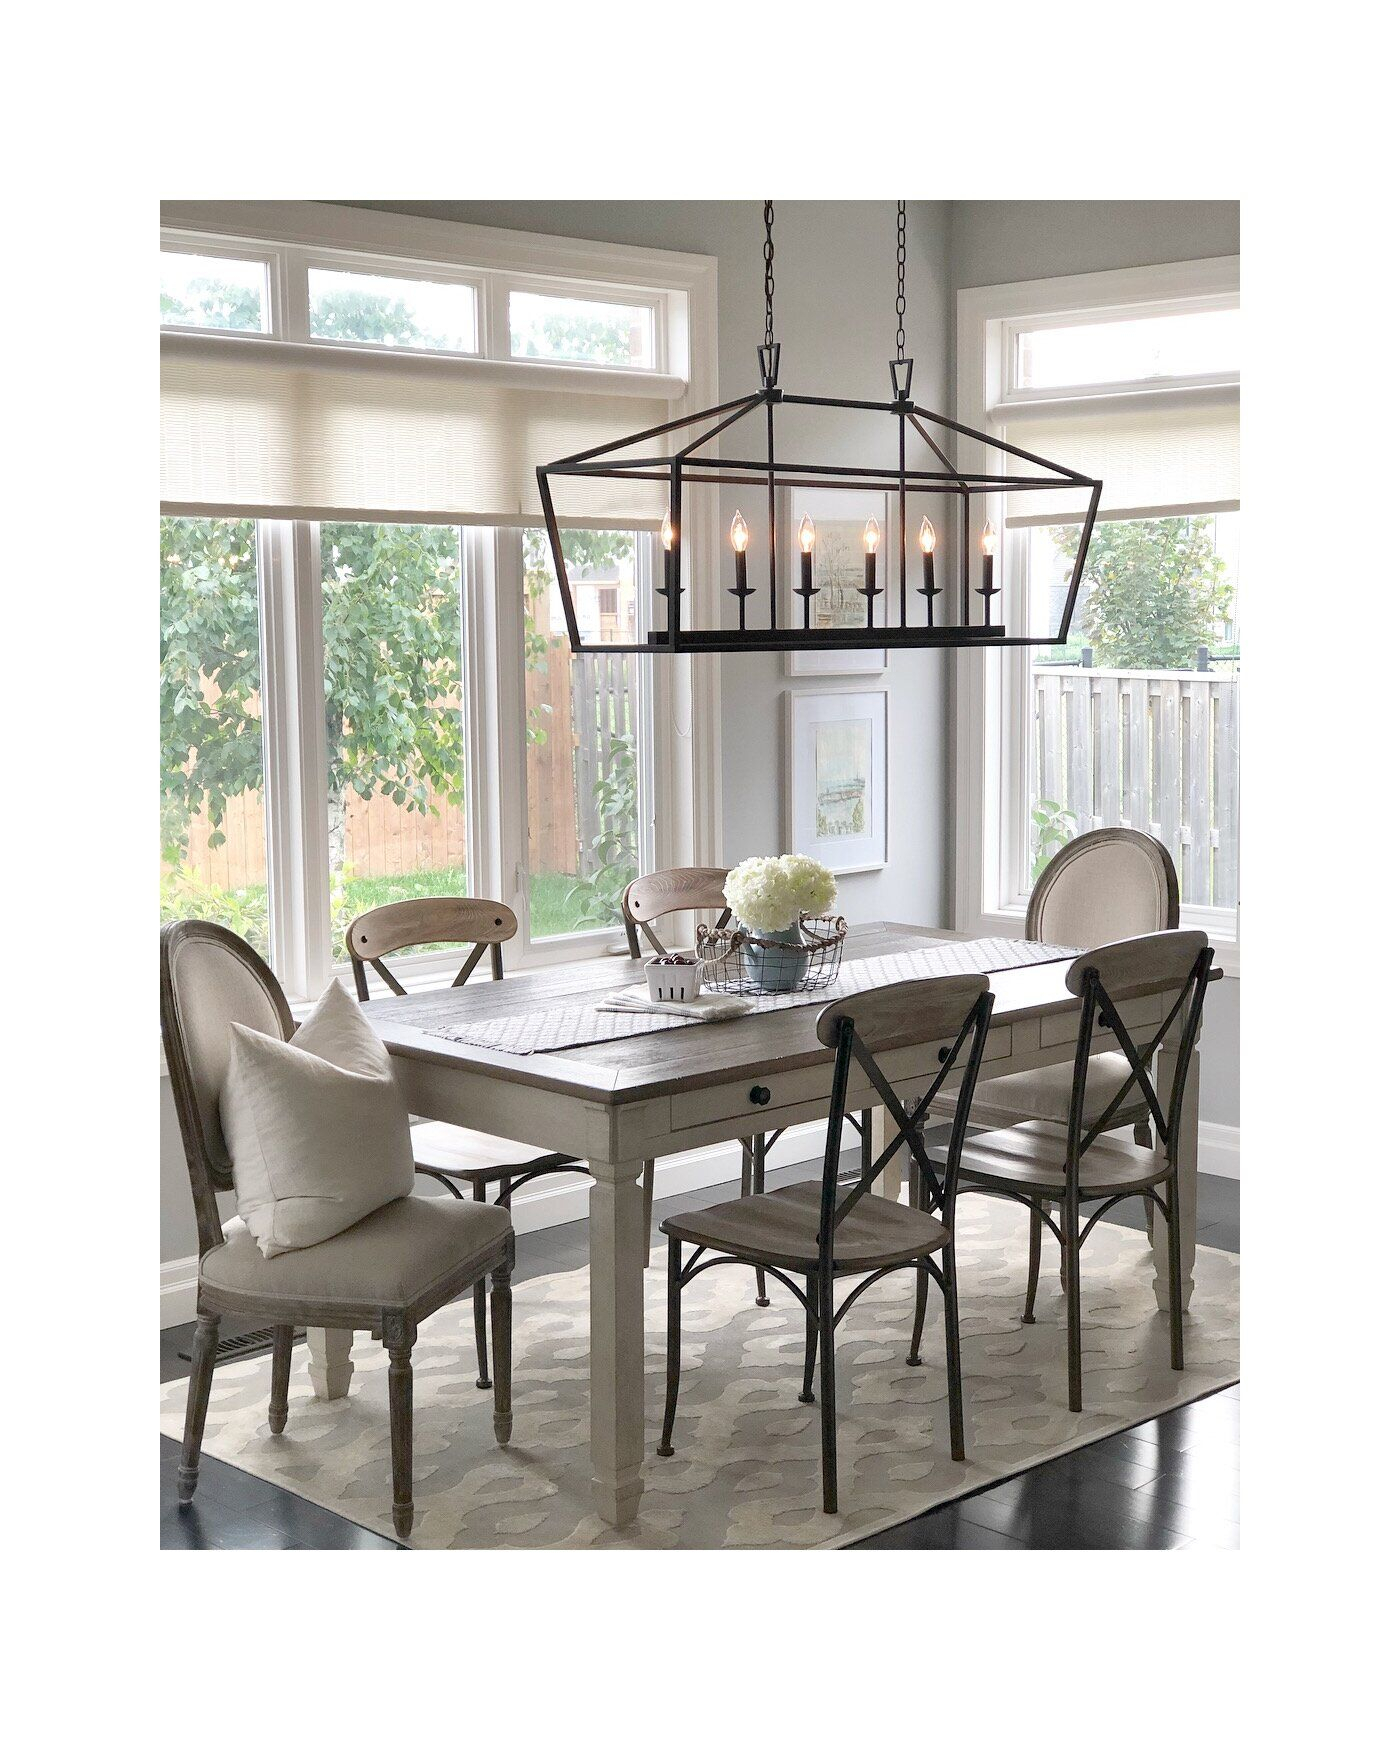 Carmen 6 Light Kitchen Island Pendant In 2019 | Dining Pertaining To Carmen 6 Light Kitchen Island Linear Pendants (View 4 of 30)